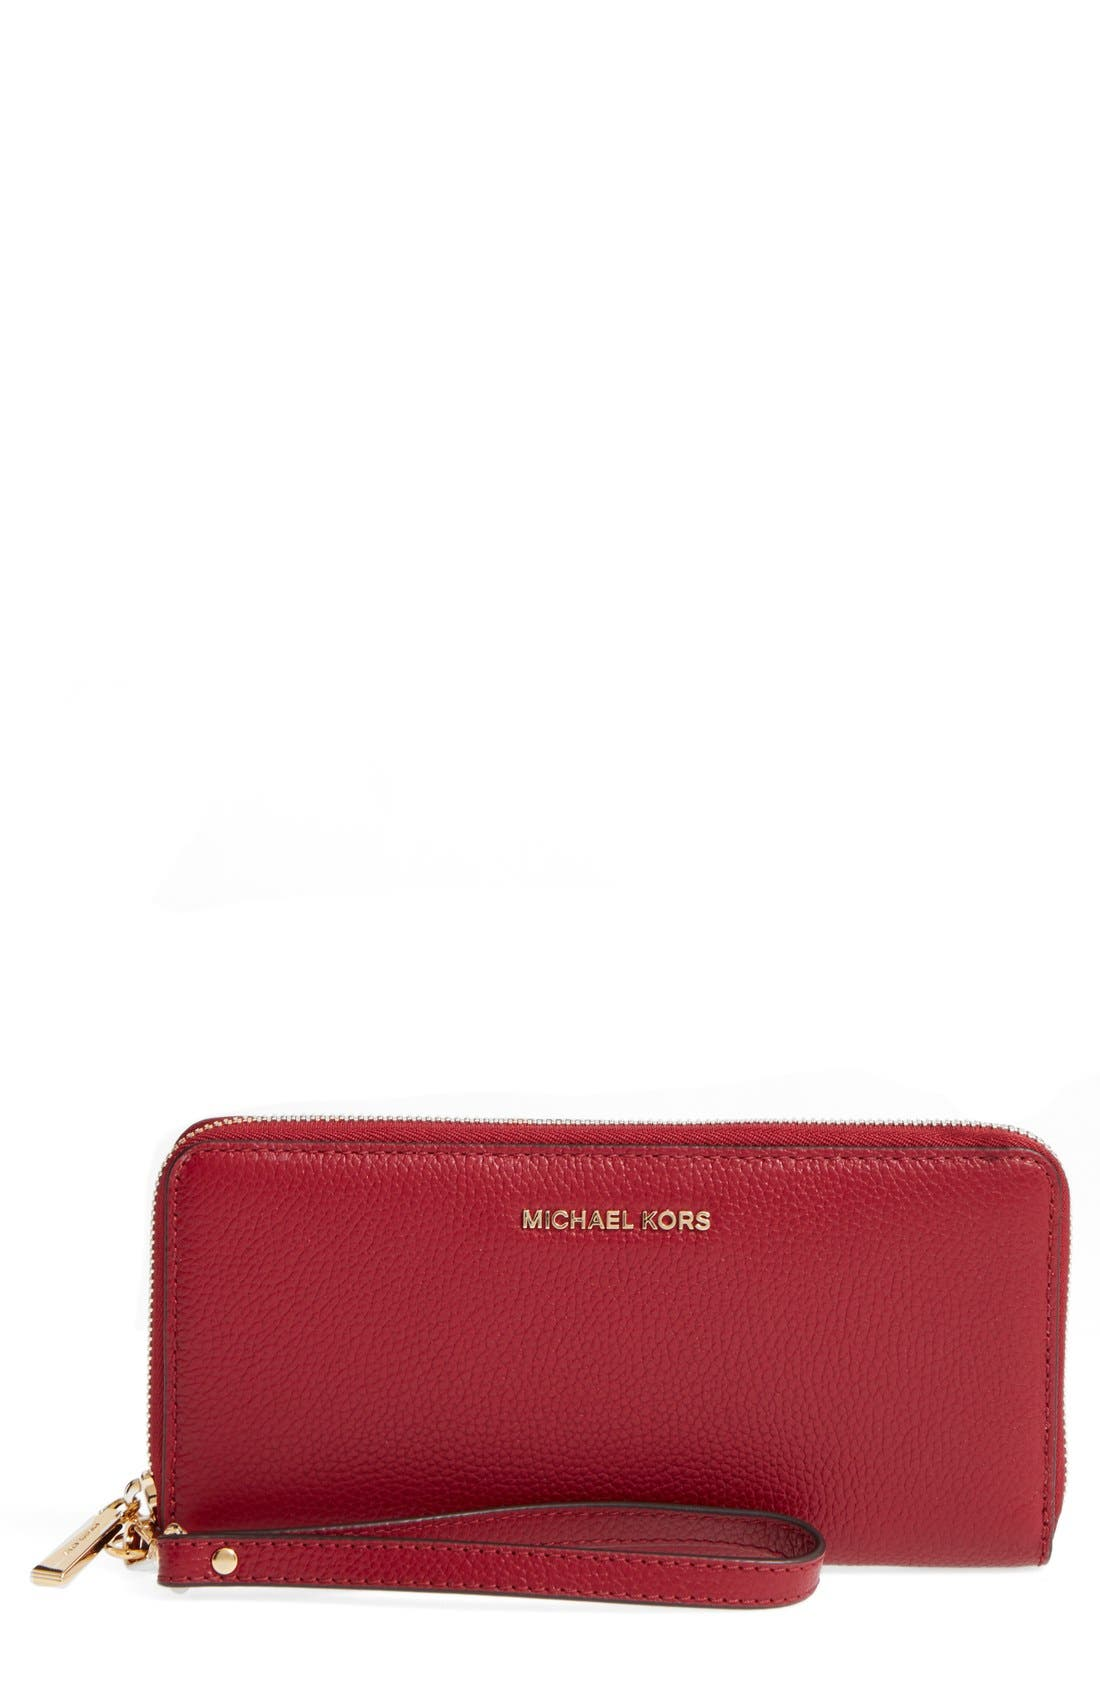 'Mercer' Leather Continental Wallet,                             Main thumbnail 8, color,